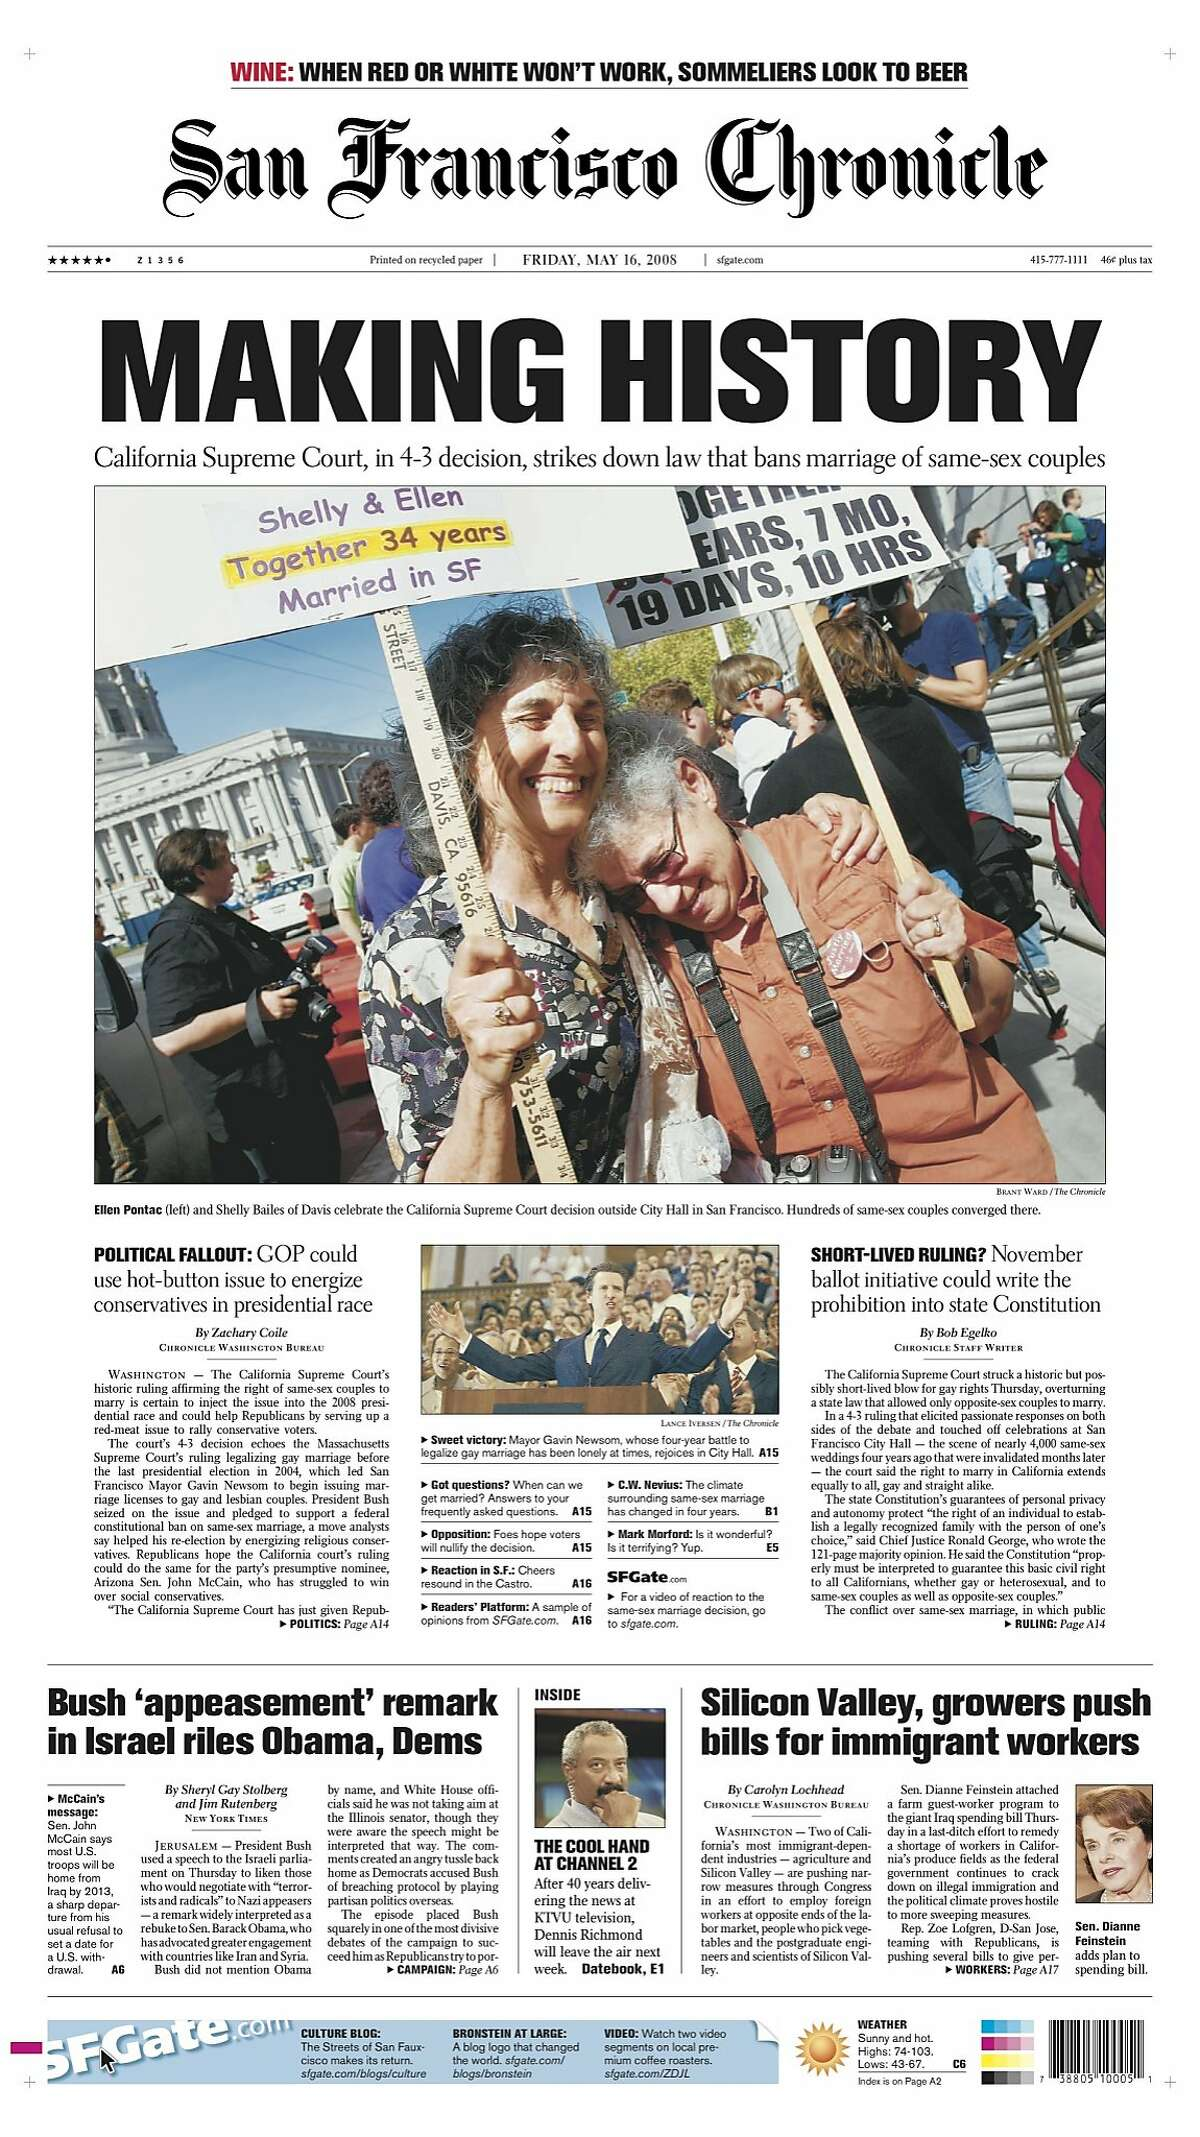 The Chronicle front page regarding same-sex marriage on May 16, 2008.